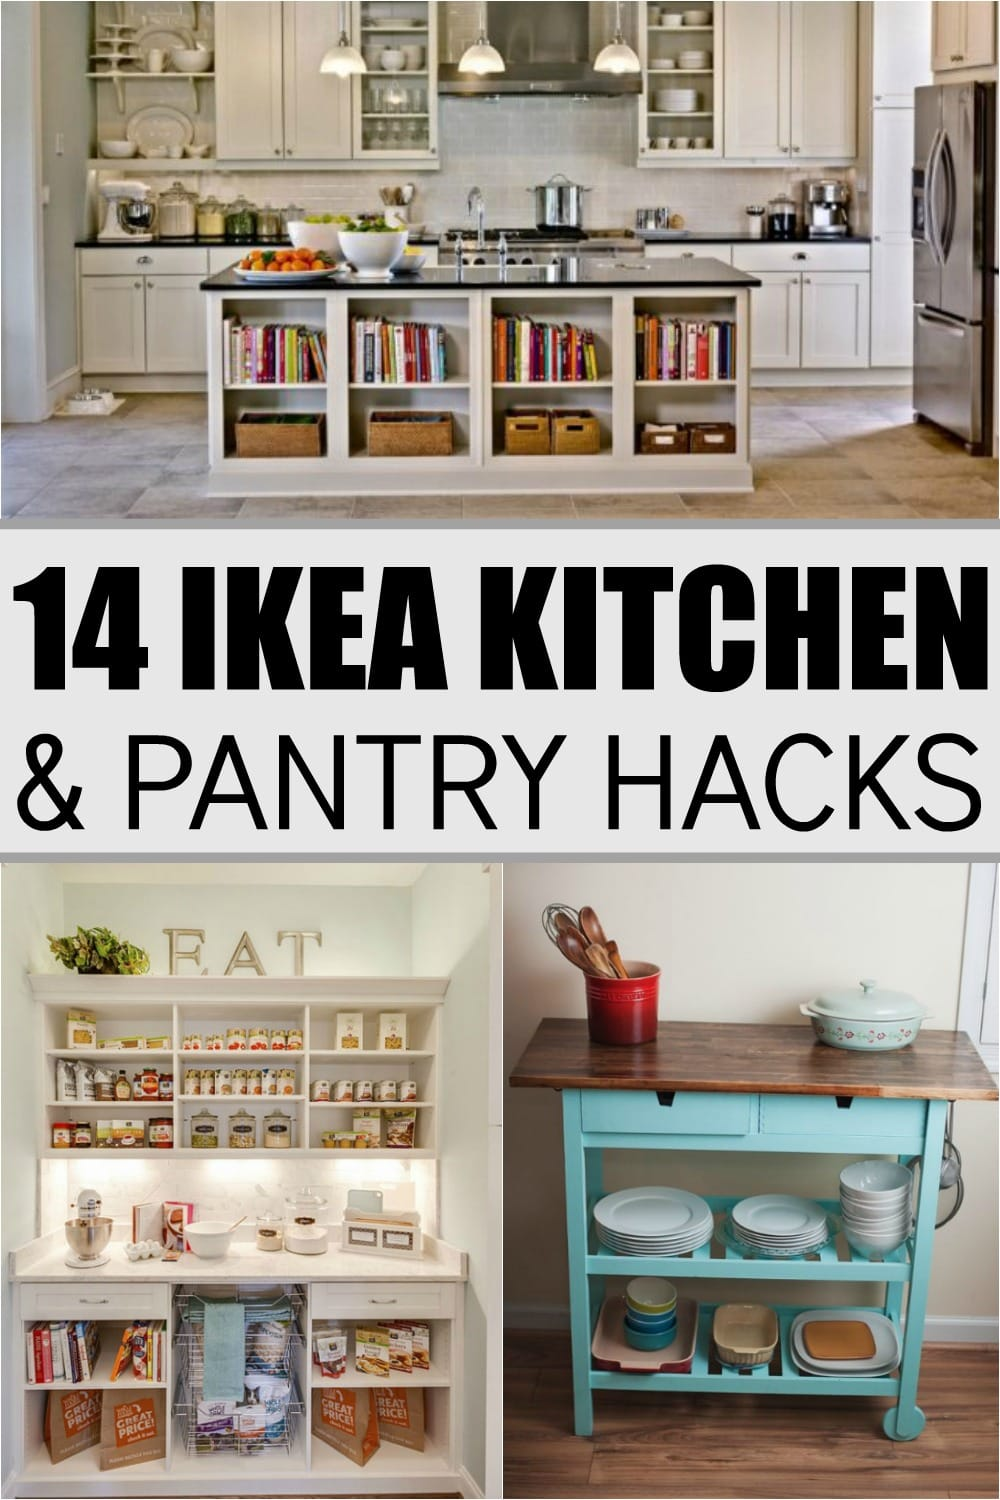 14 ikea hacks for your kitchen and pantry super foods life. Black Bedroom Furniture Sets. Home Design Ideas